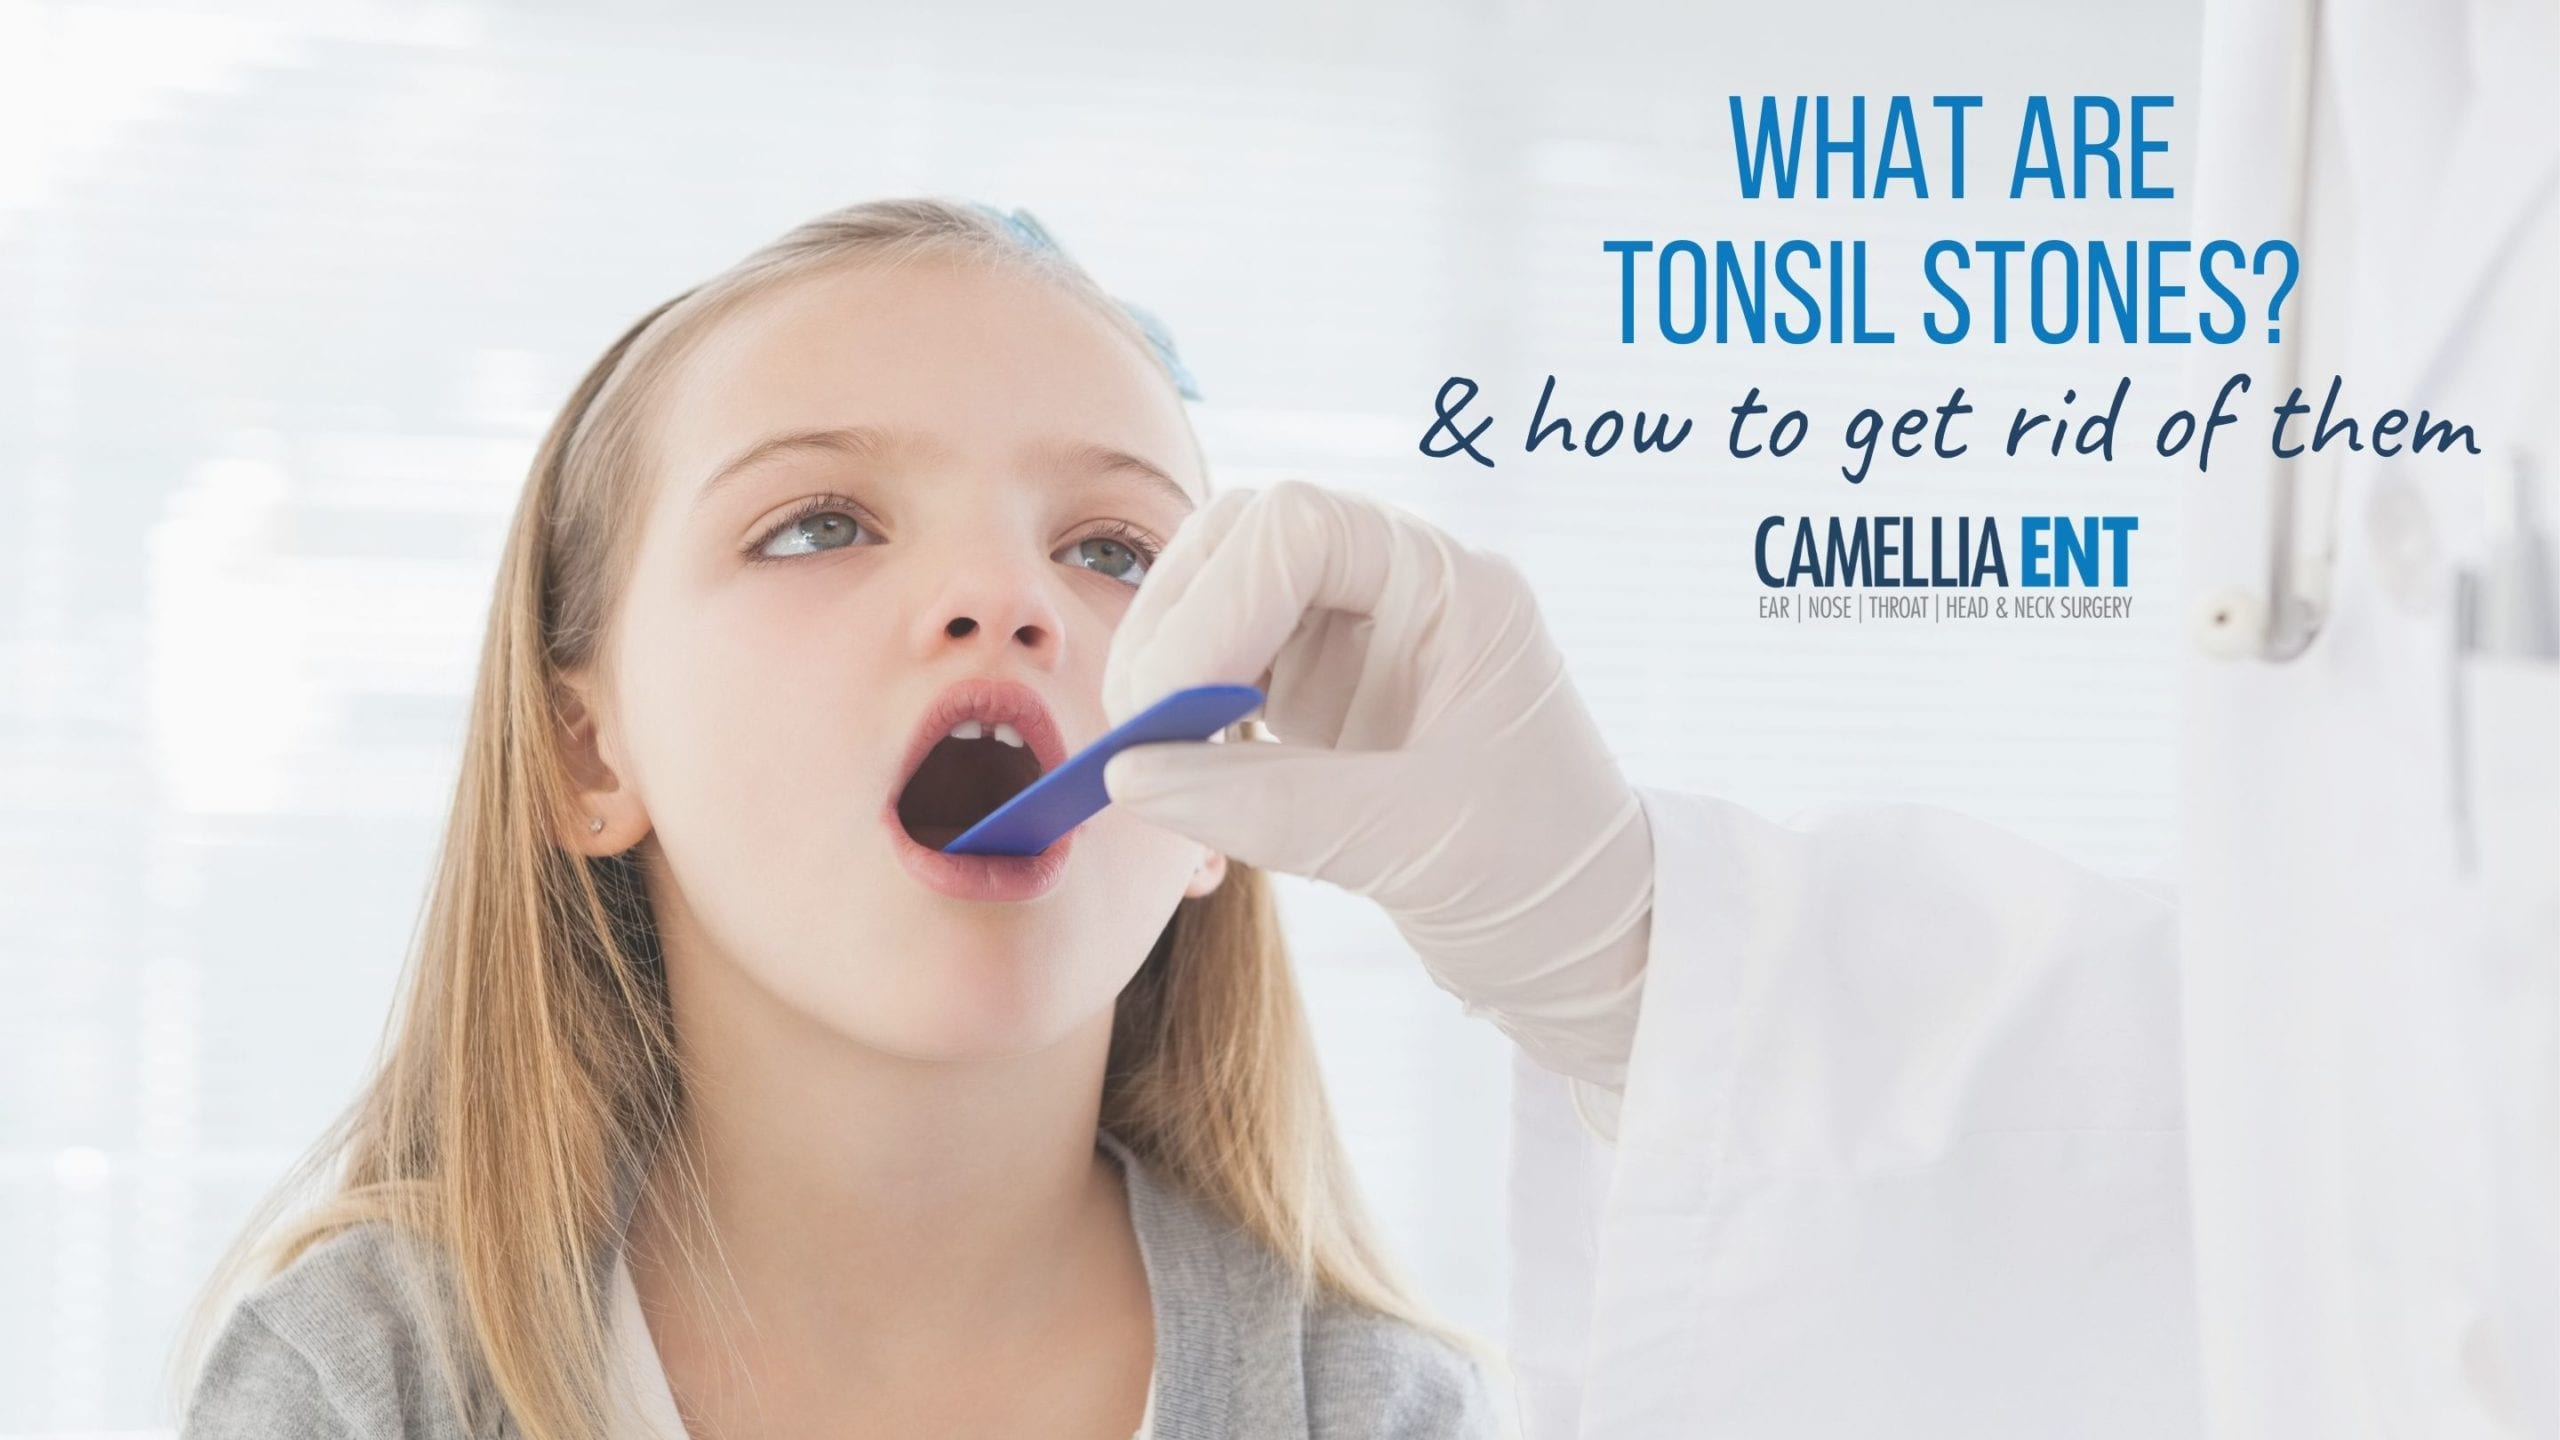 What Are Tonsil Stones And How To Get Rid Of Them?